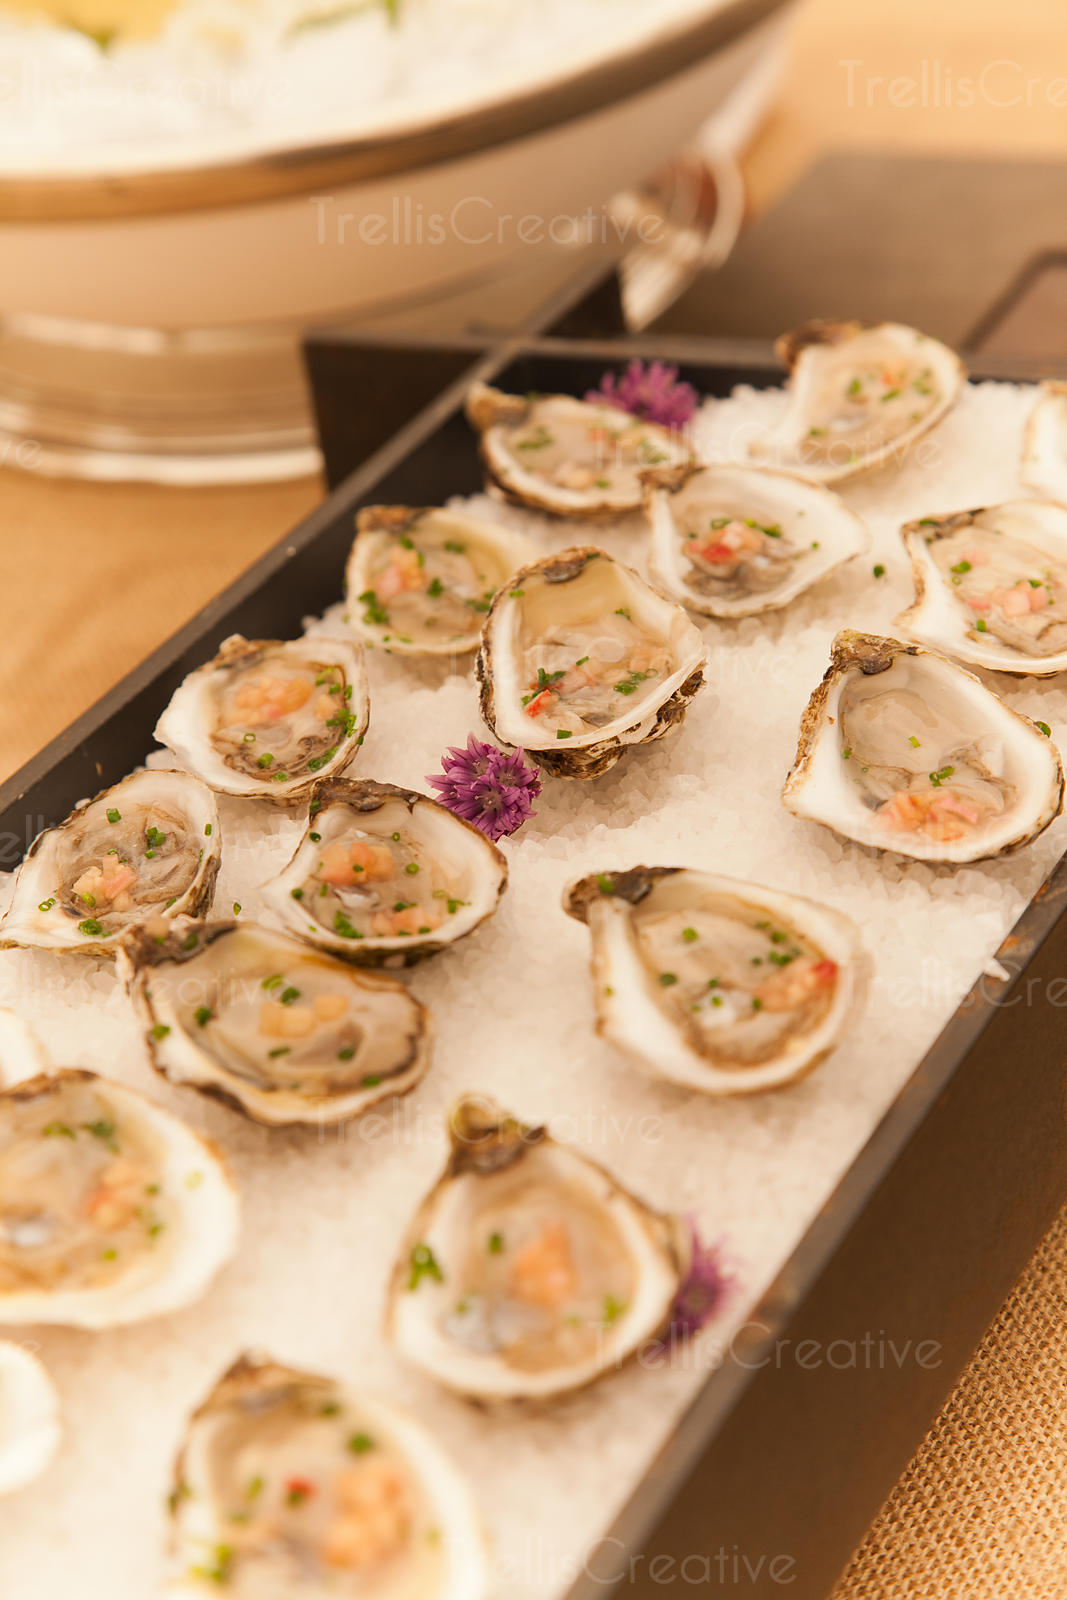 A platter of fresh organic raw oysters on ice at restaurant